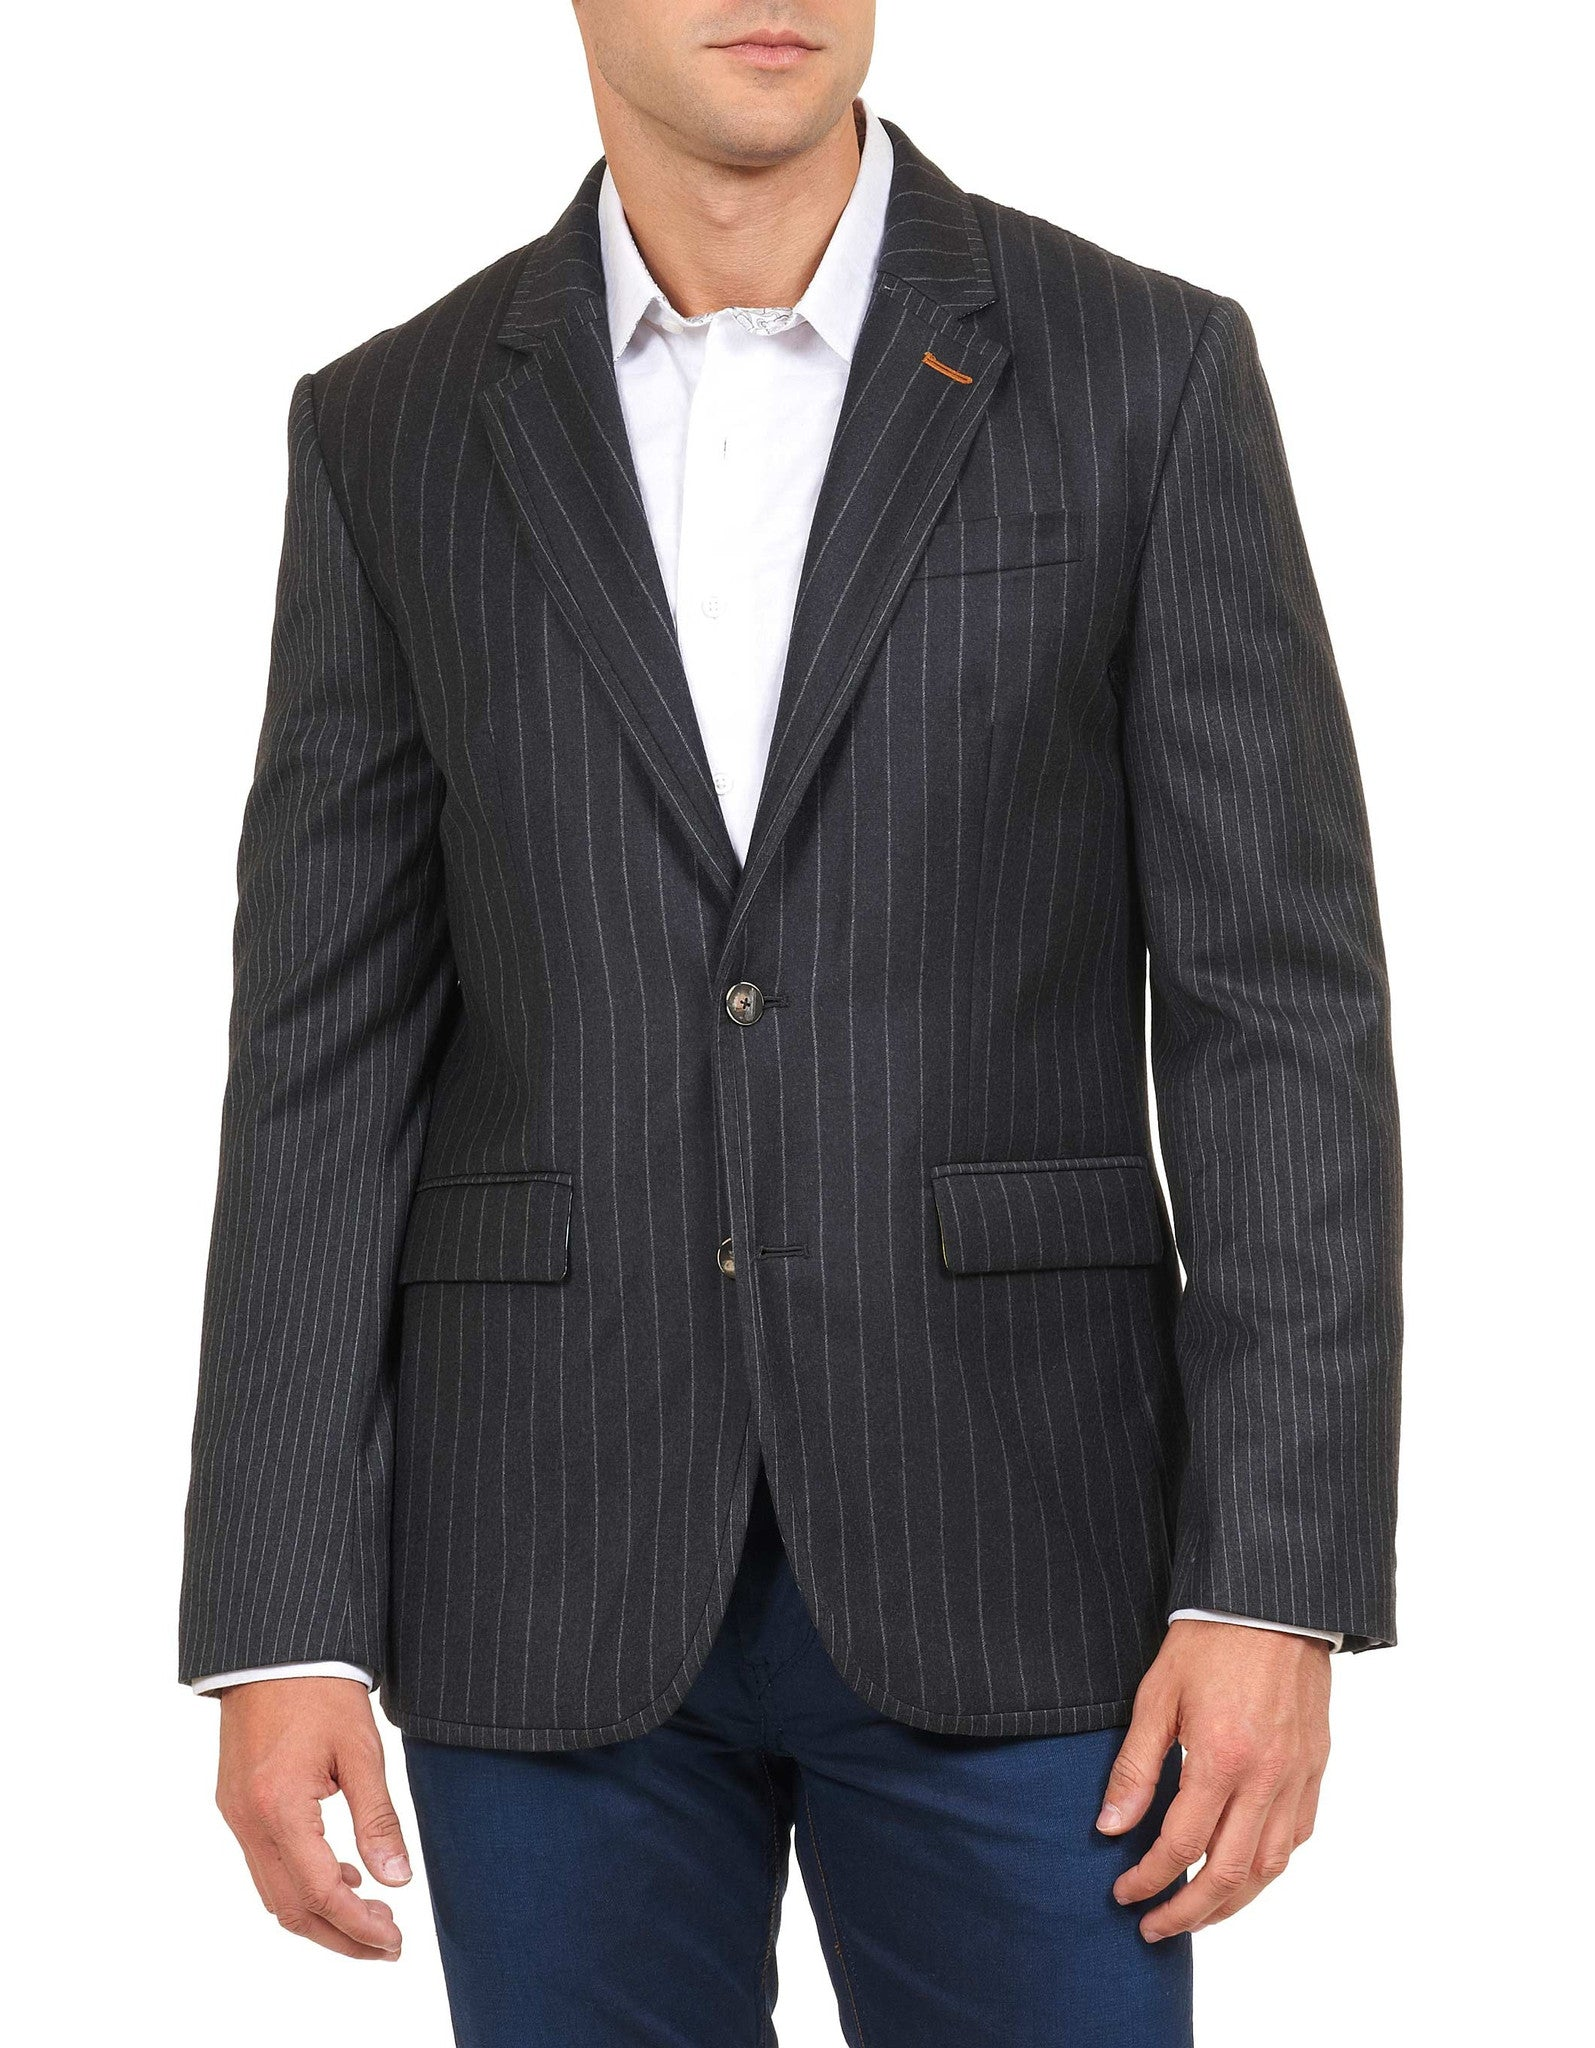 Robert Graham Slattery Tailored Fit Sport Coat in Charcoal RF155002TF